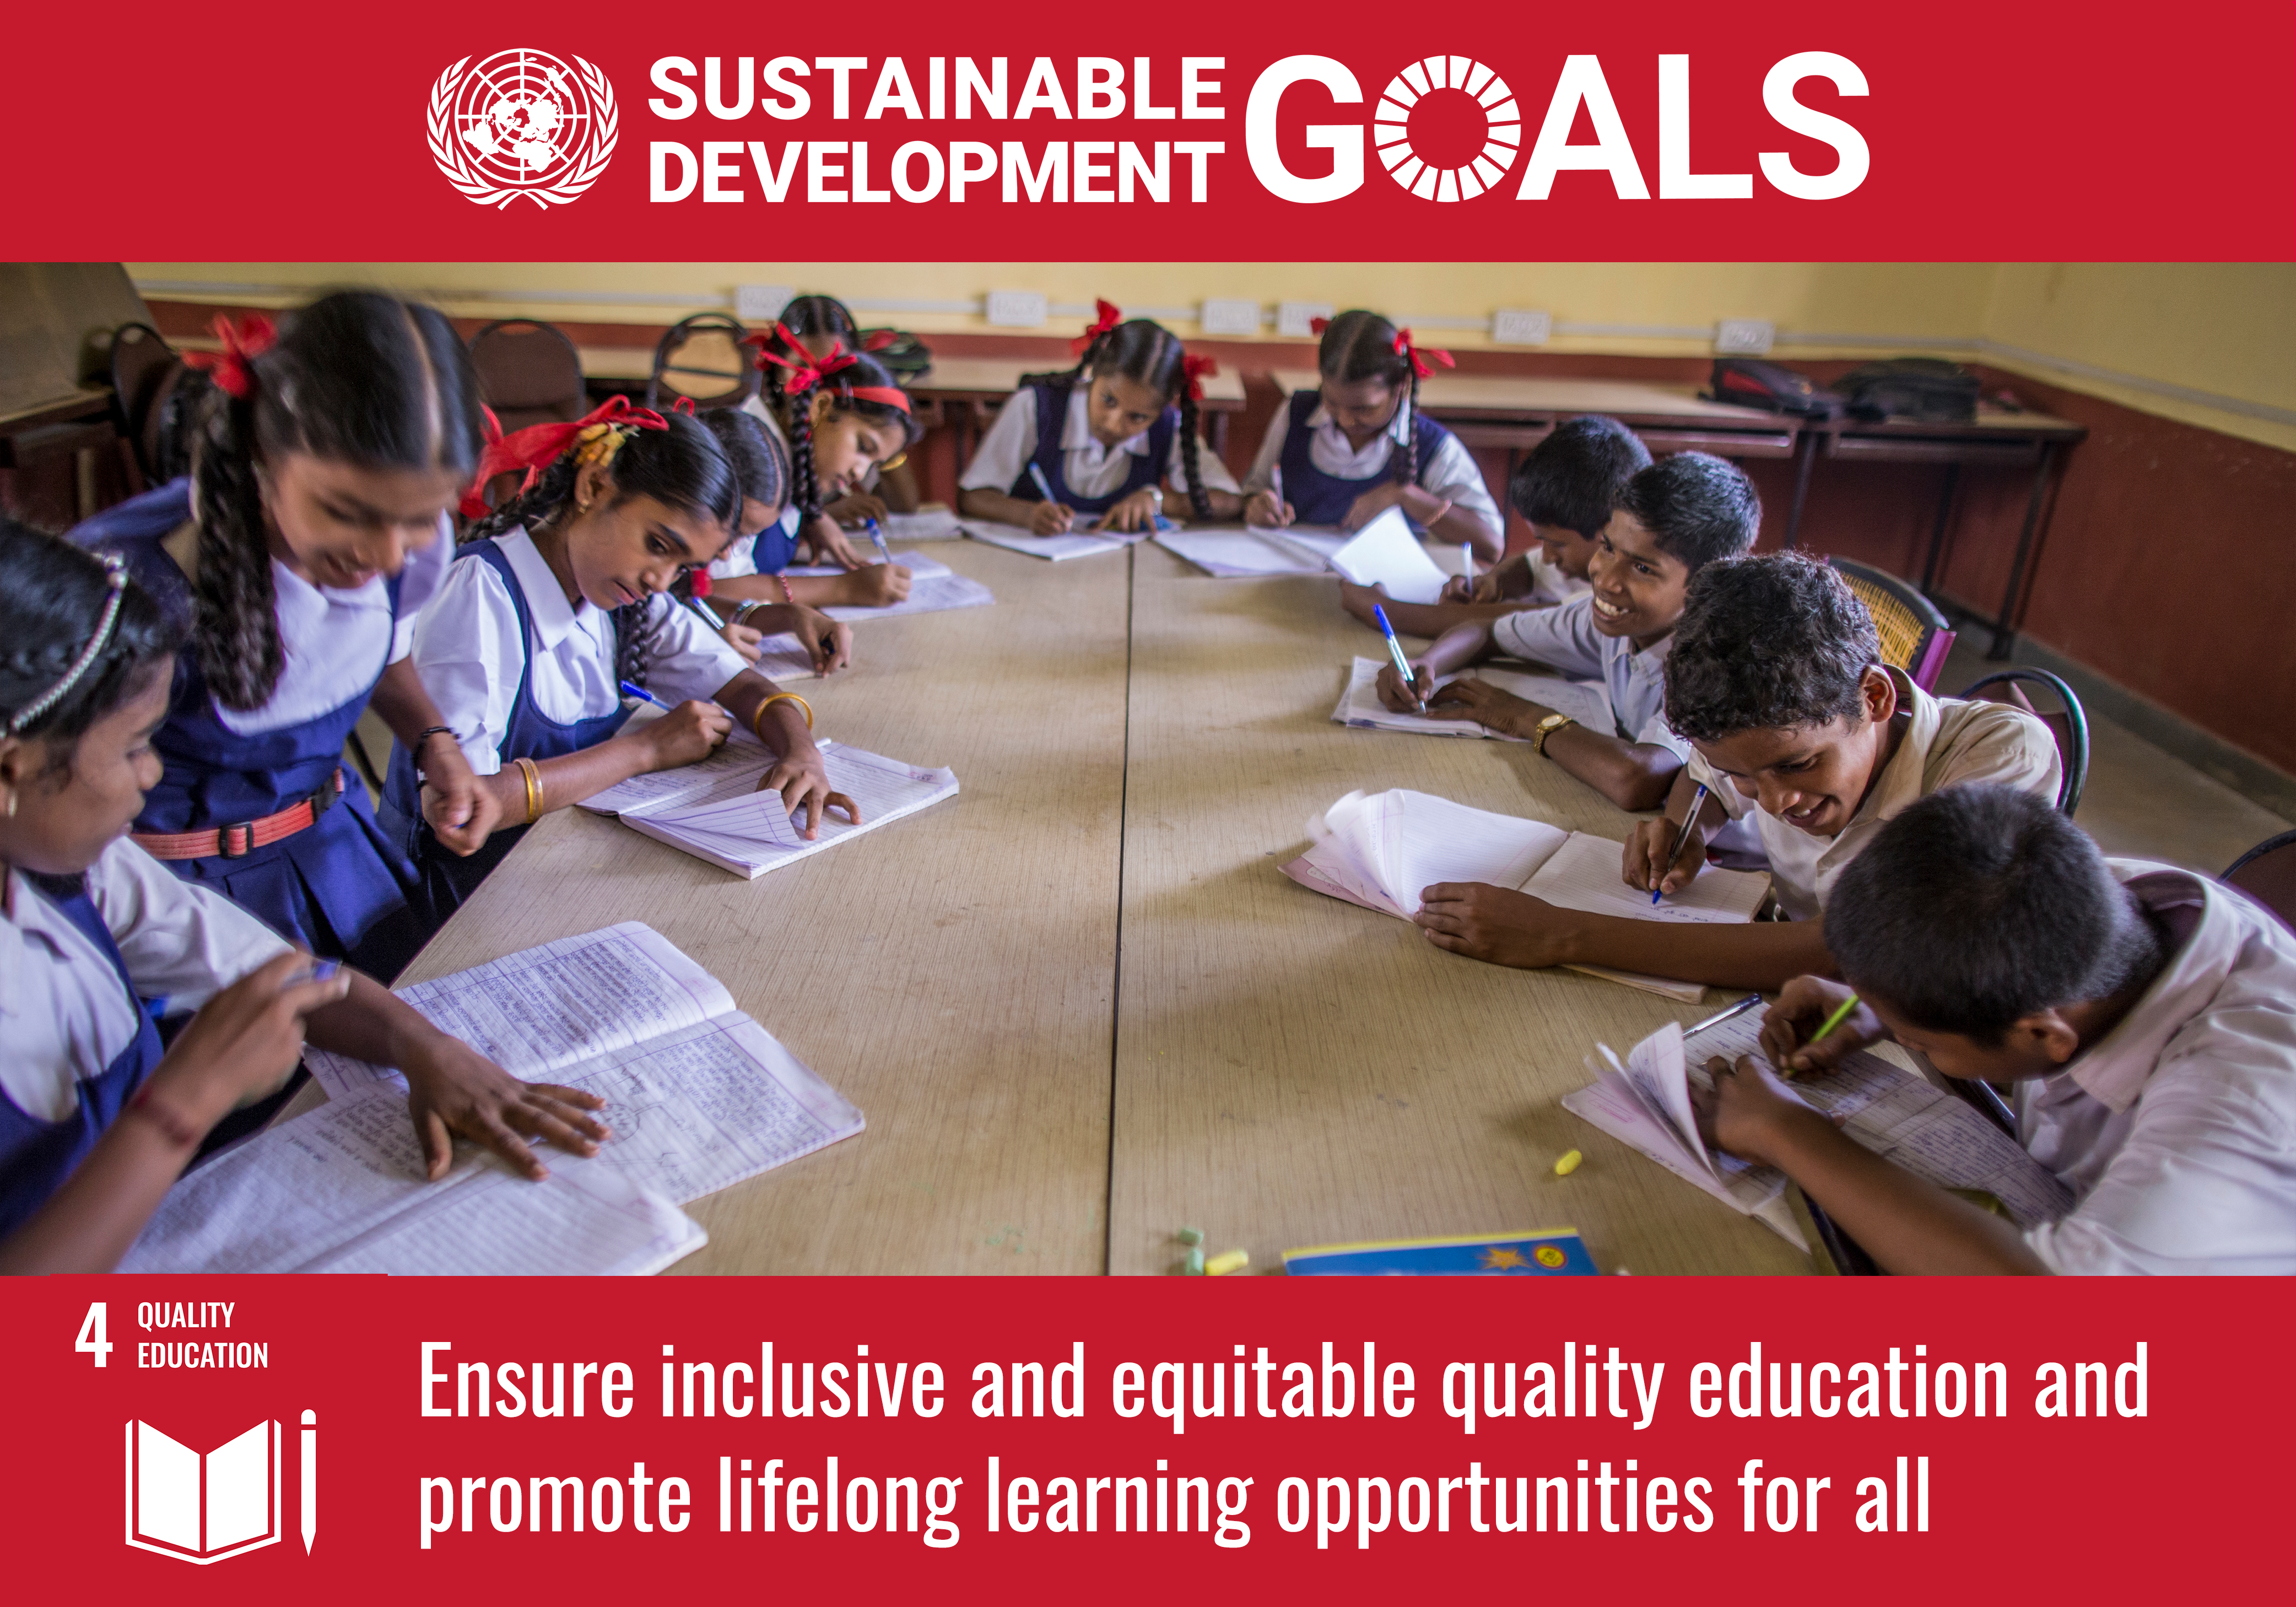 Sustainable Development Goals - Quality education for all in India